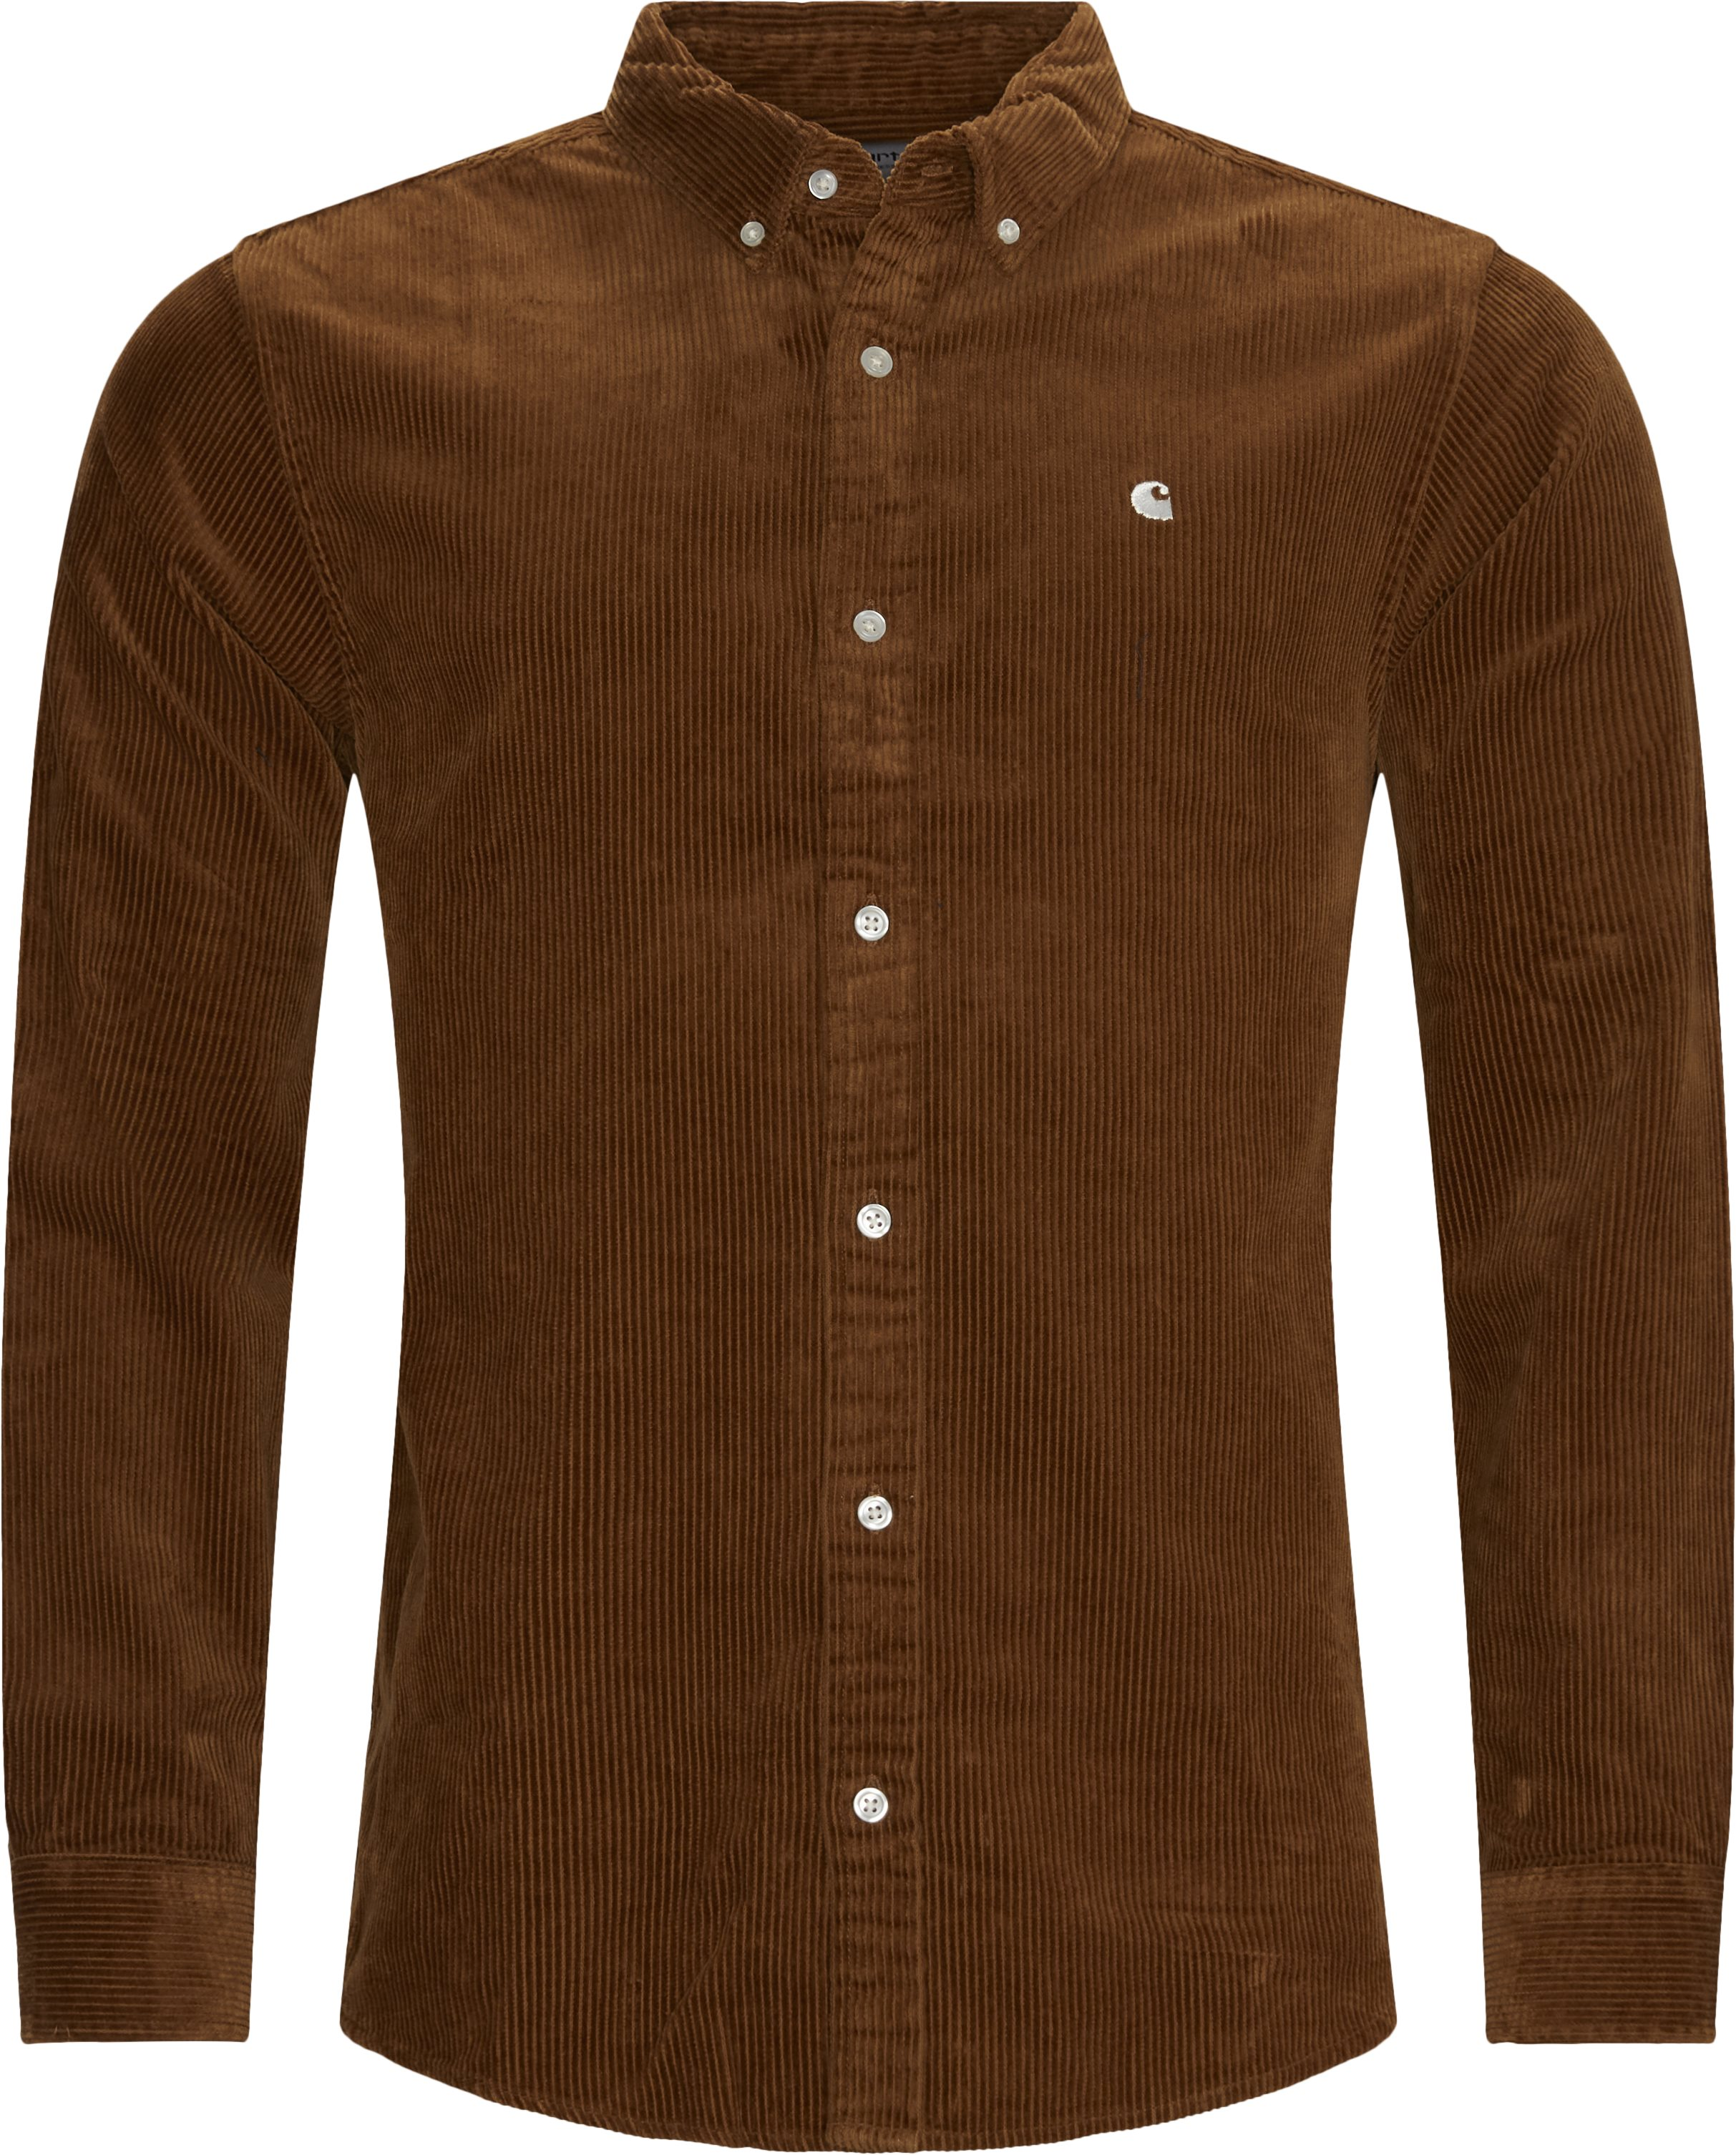 L/S Madison Cord Shirt - Skjortor - Regular - Brun